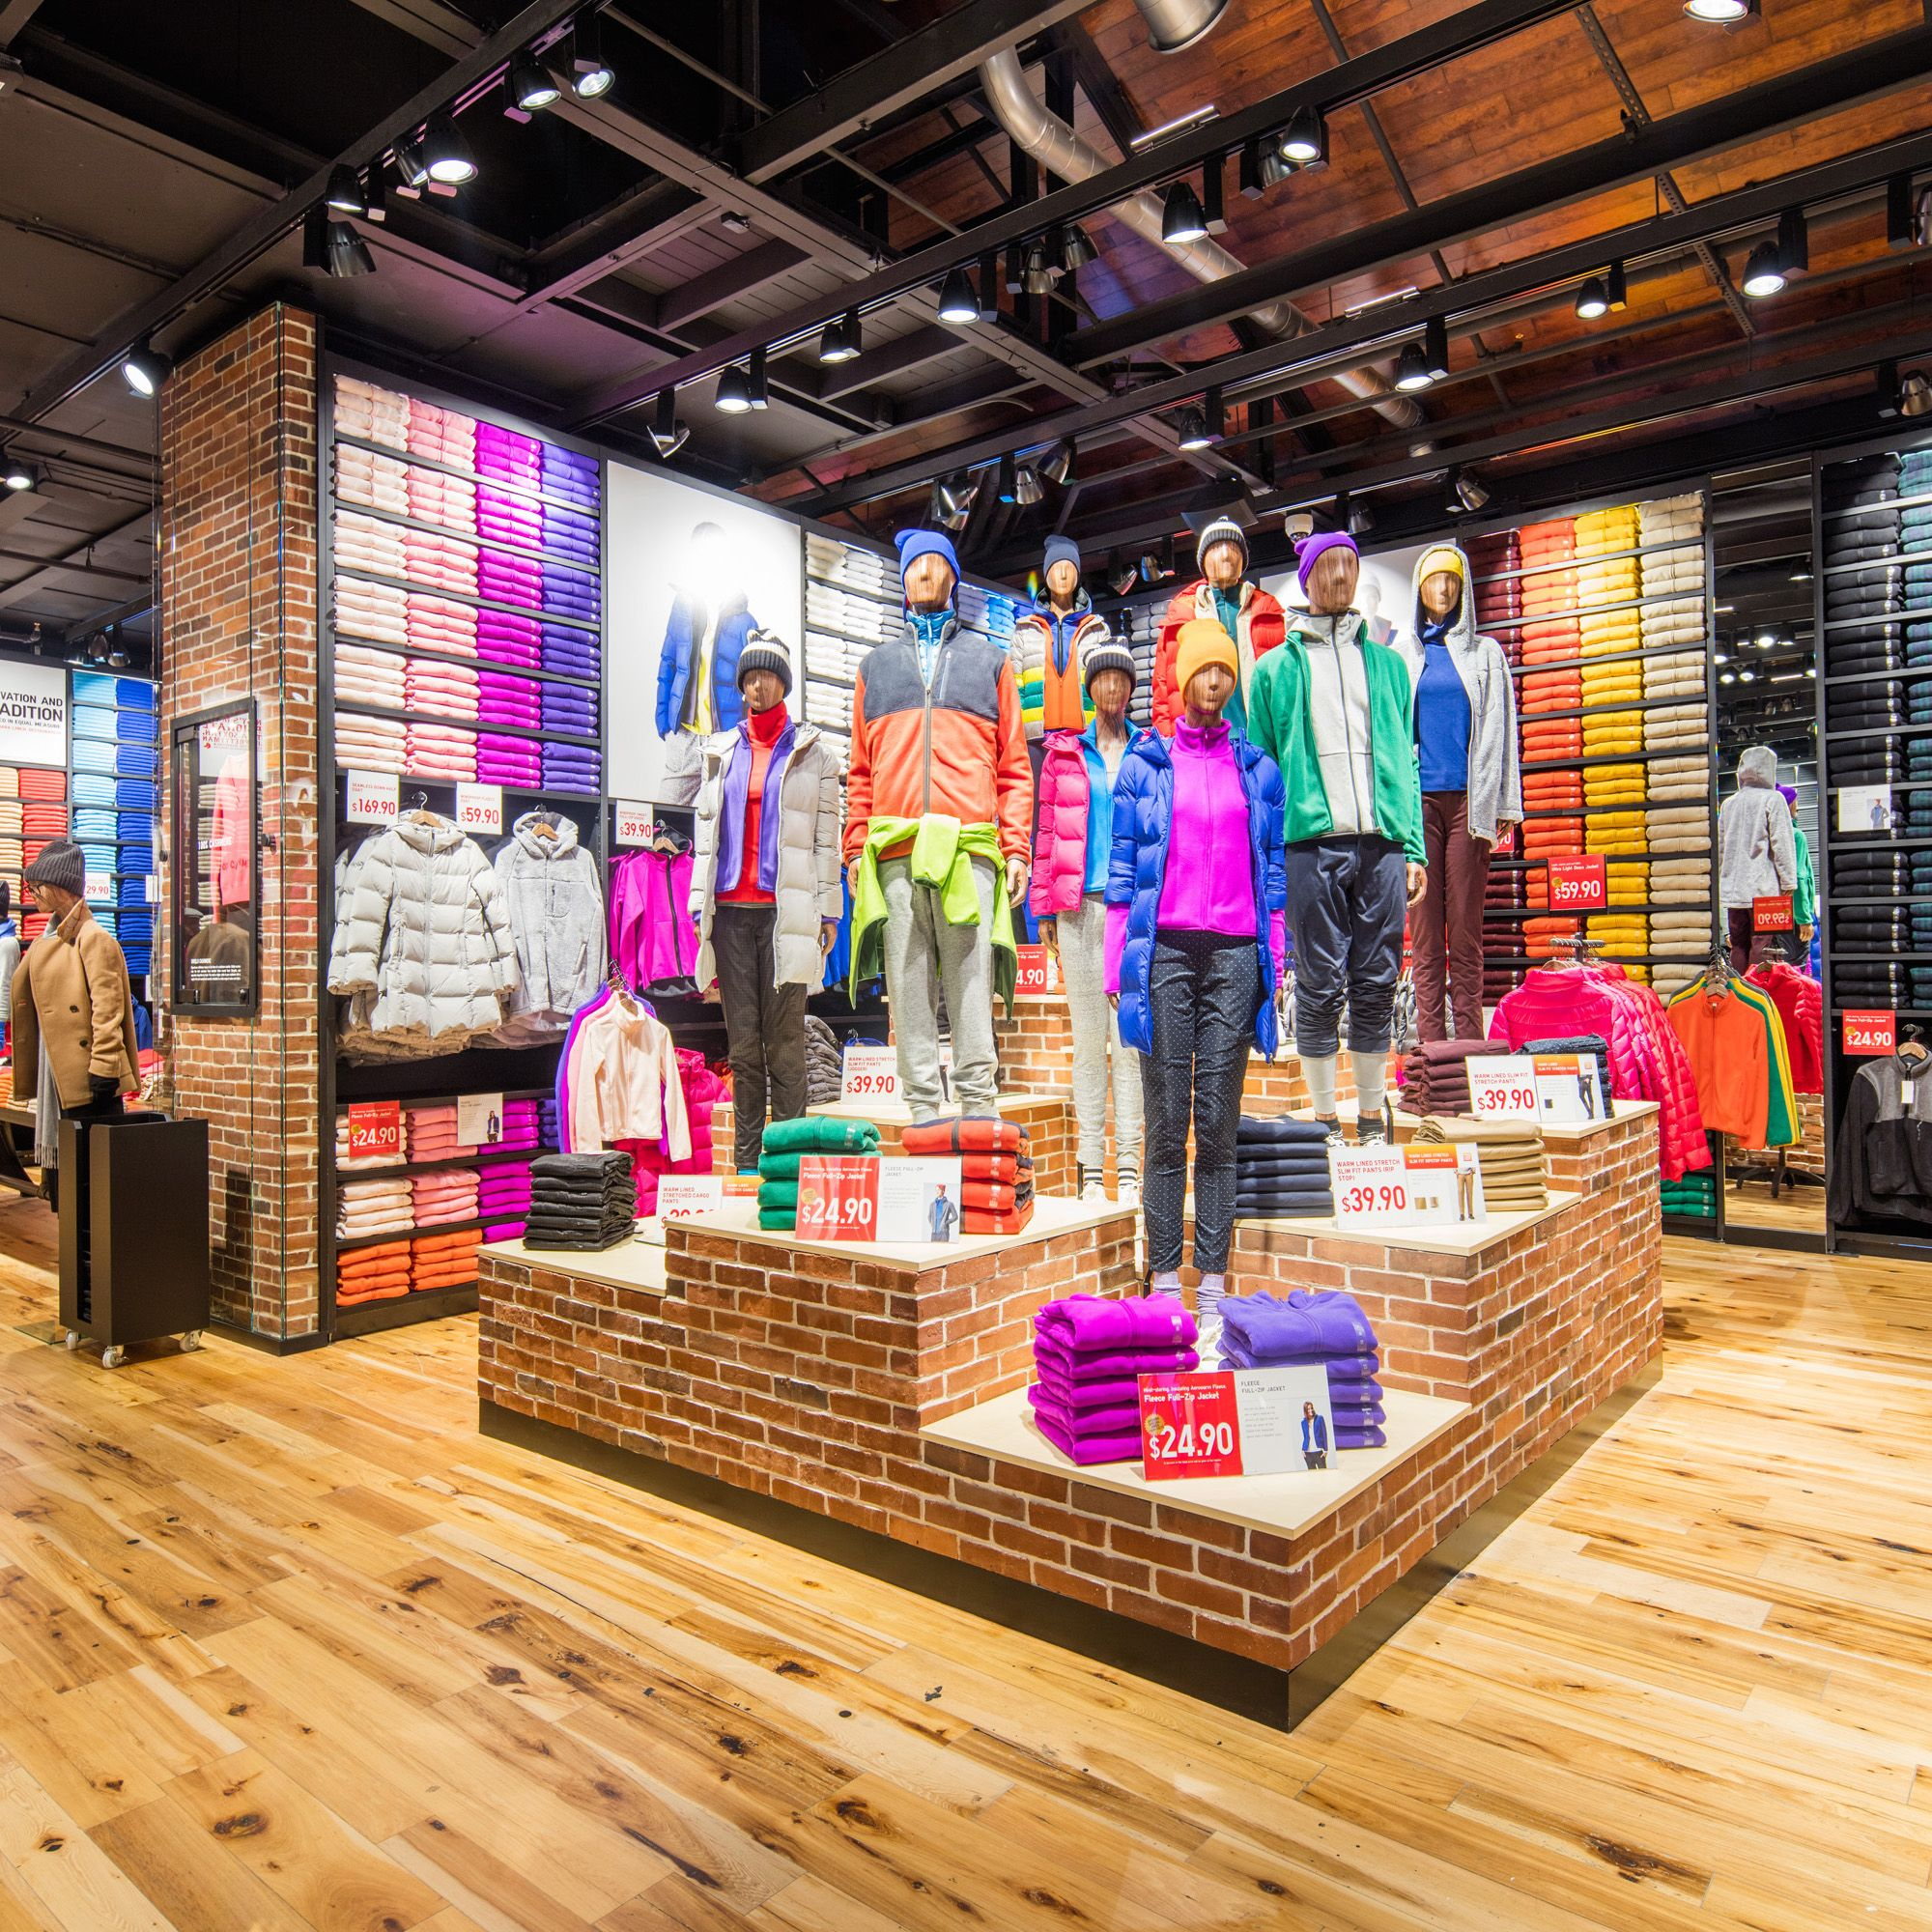 Retail Store Diplays: Bespoke Mannequins Developed For Uniqlo, Here In A Wooden